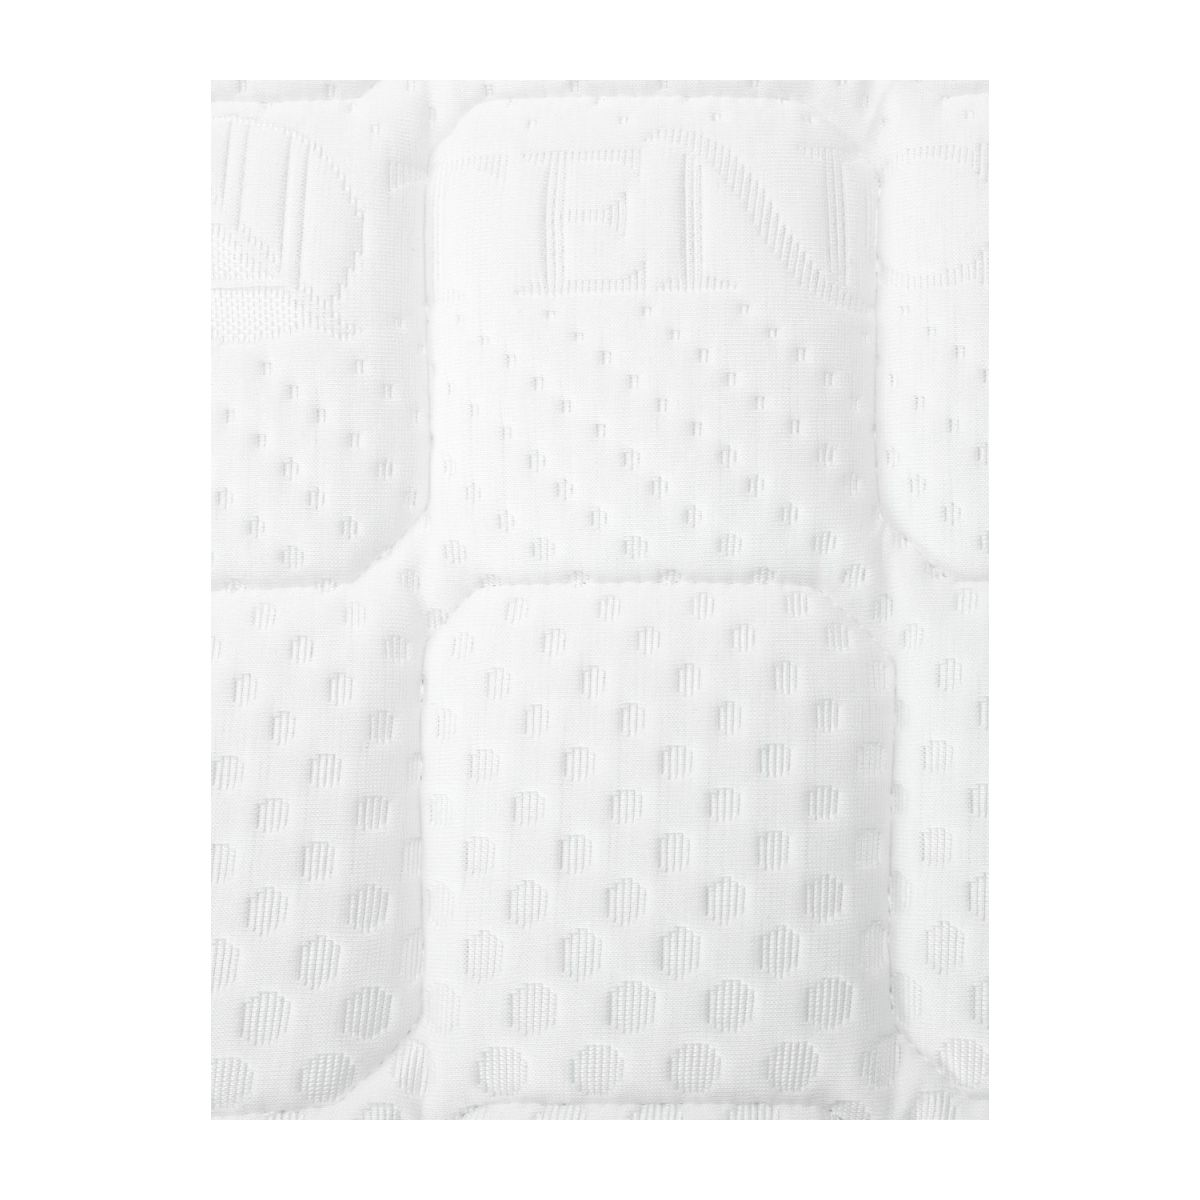 Spring mattress, width 22 cm, 80x200cm - firm support n°6